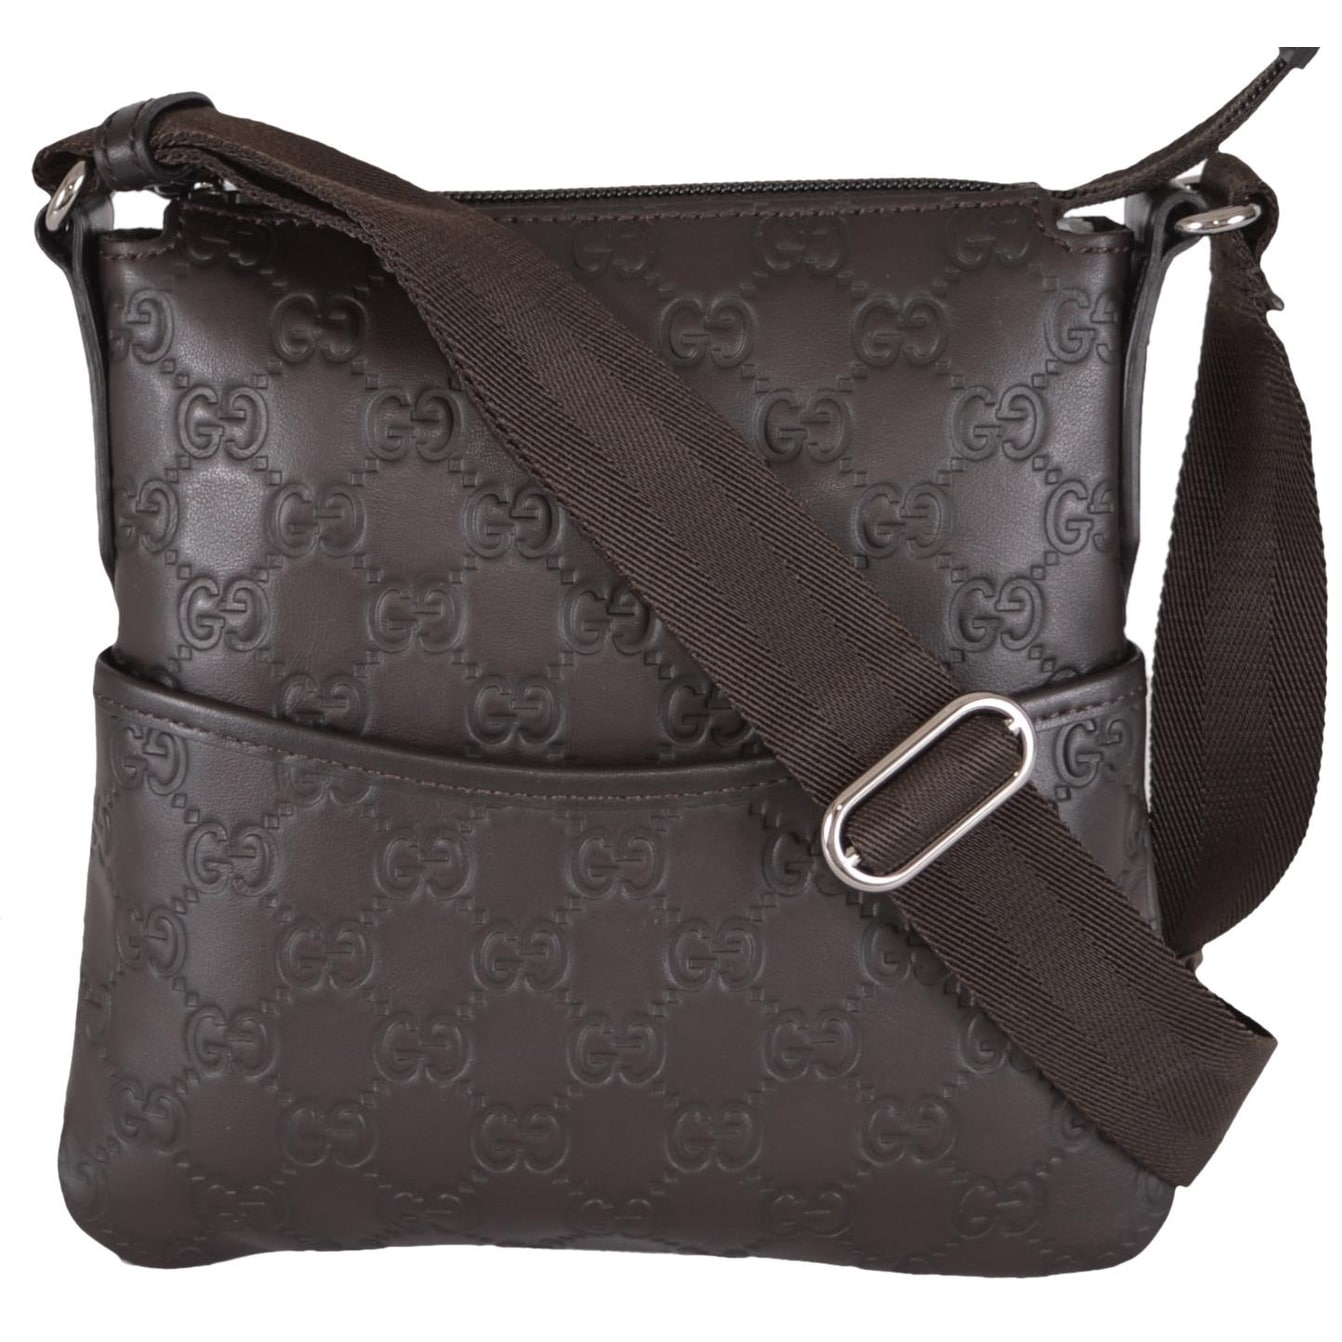 Gucci 374416 MINI Brown Leather GG Guccissima Crossbody Day Purse Bag